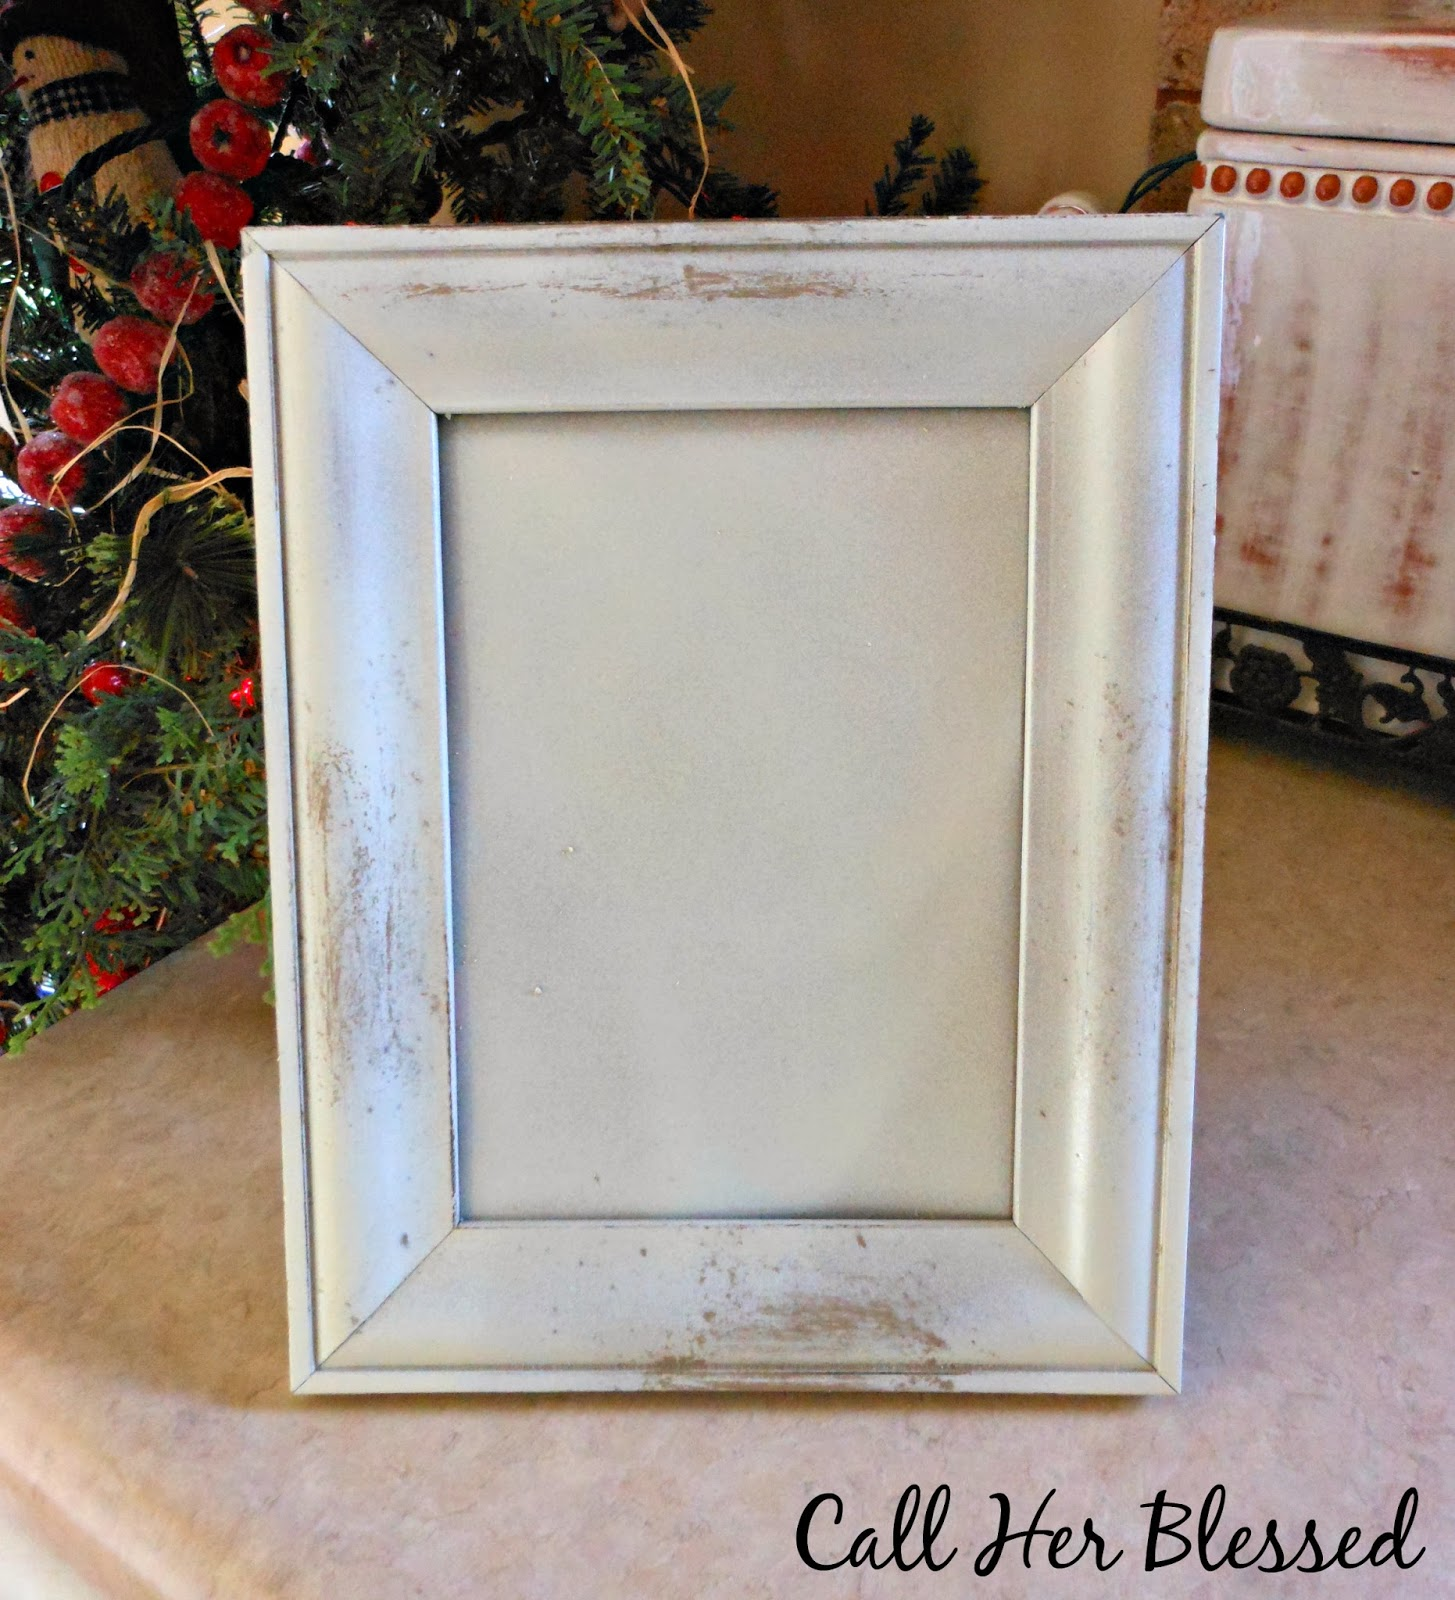 If The Creek Don\'t Rise: Distressing Frames with Soap & Spray Paint